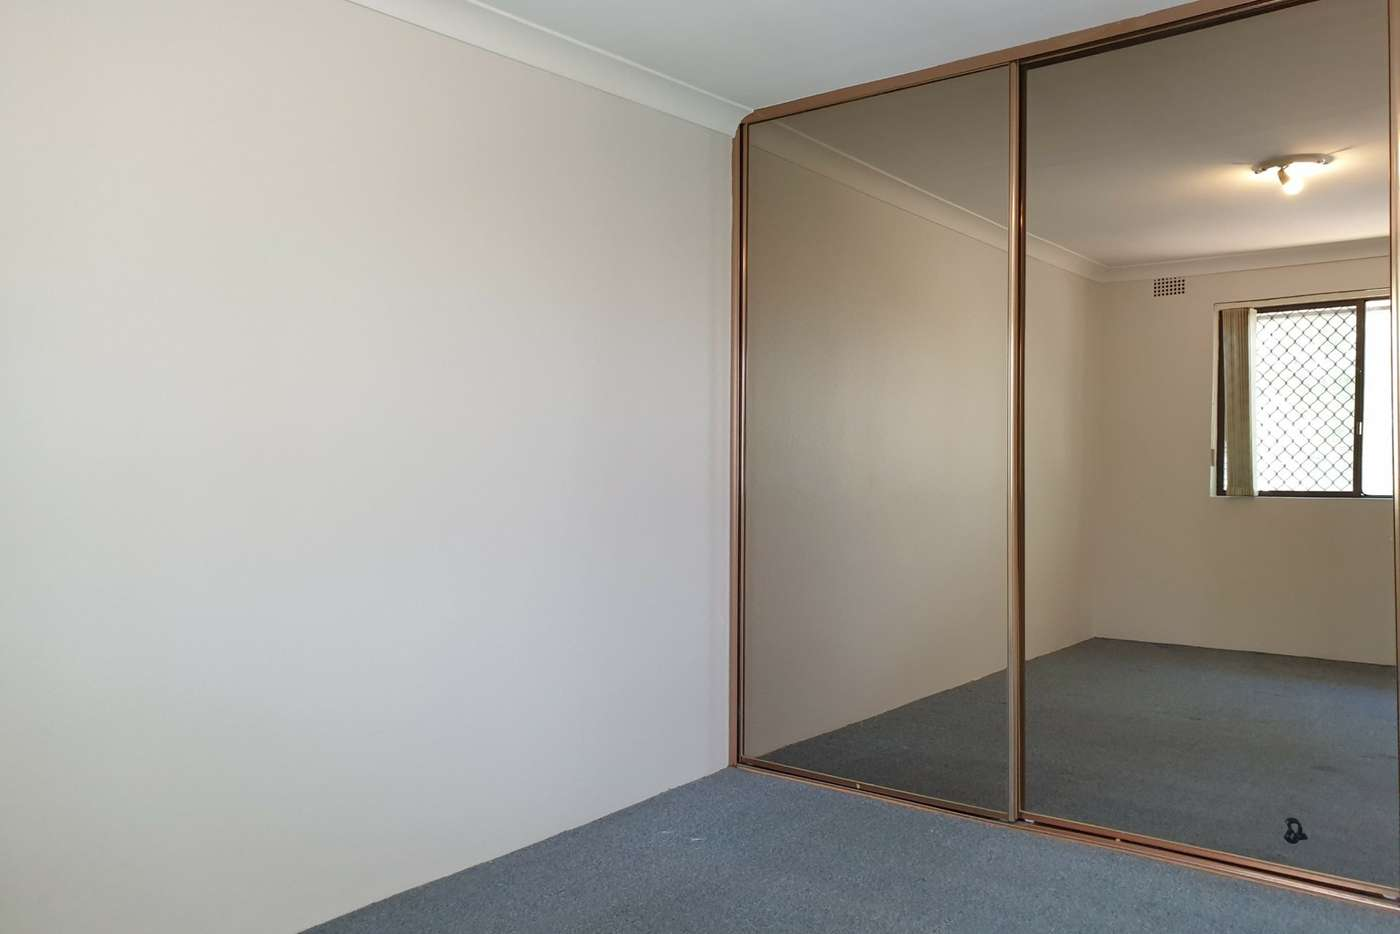 Sixth view of Homely unit listing, 6/1-3 Apia Street, Guildford NSW 2161